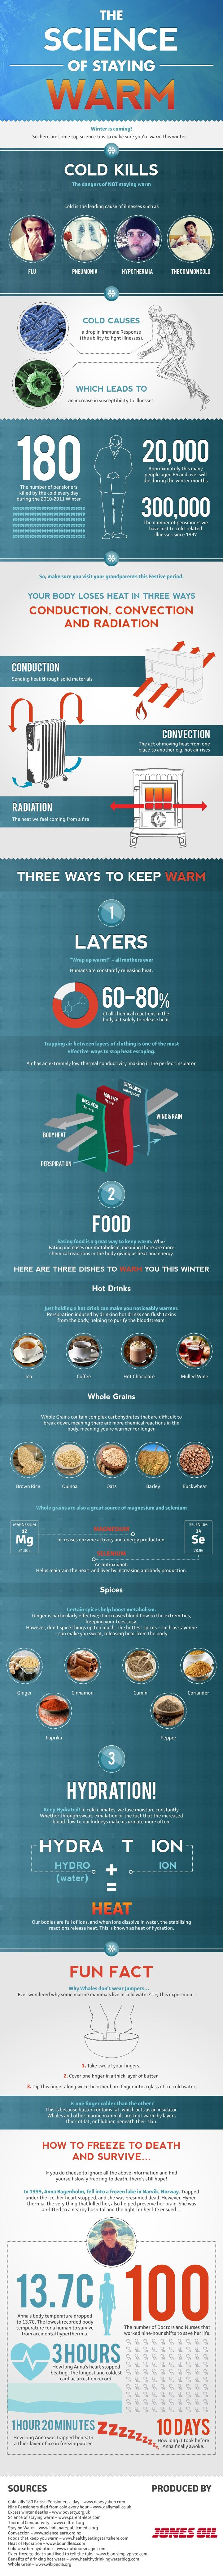 The Science of Staying Warm